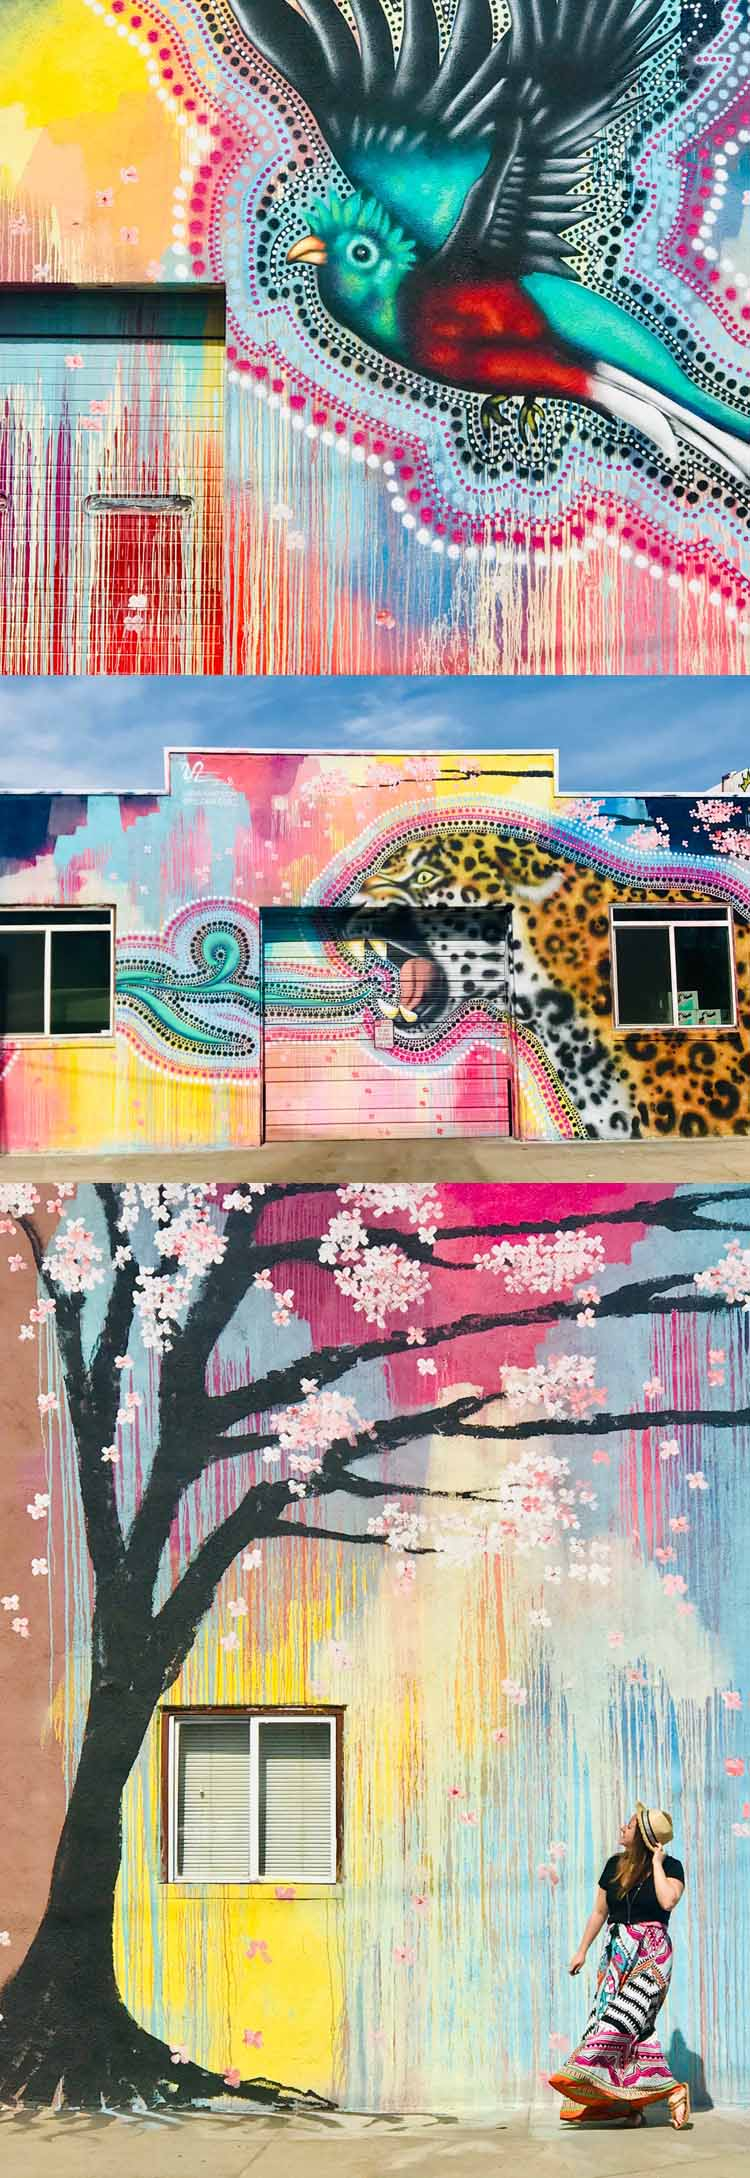 Love photography? The Denver street art scene has exploded with murals and graffiti everywhere you turn. Here are the best ones to blow up the 'Gram and enjoy the art in colorful Colorado. Spoiler: it's one of the best things to do in Denver! #streetart #denver #colorado #usa #graffiti #art #travel #weekendgetaway